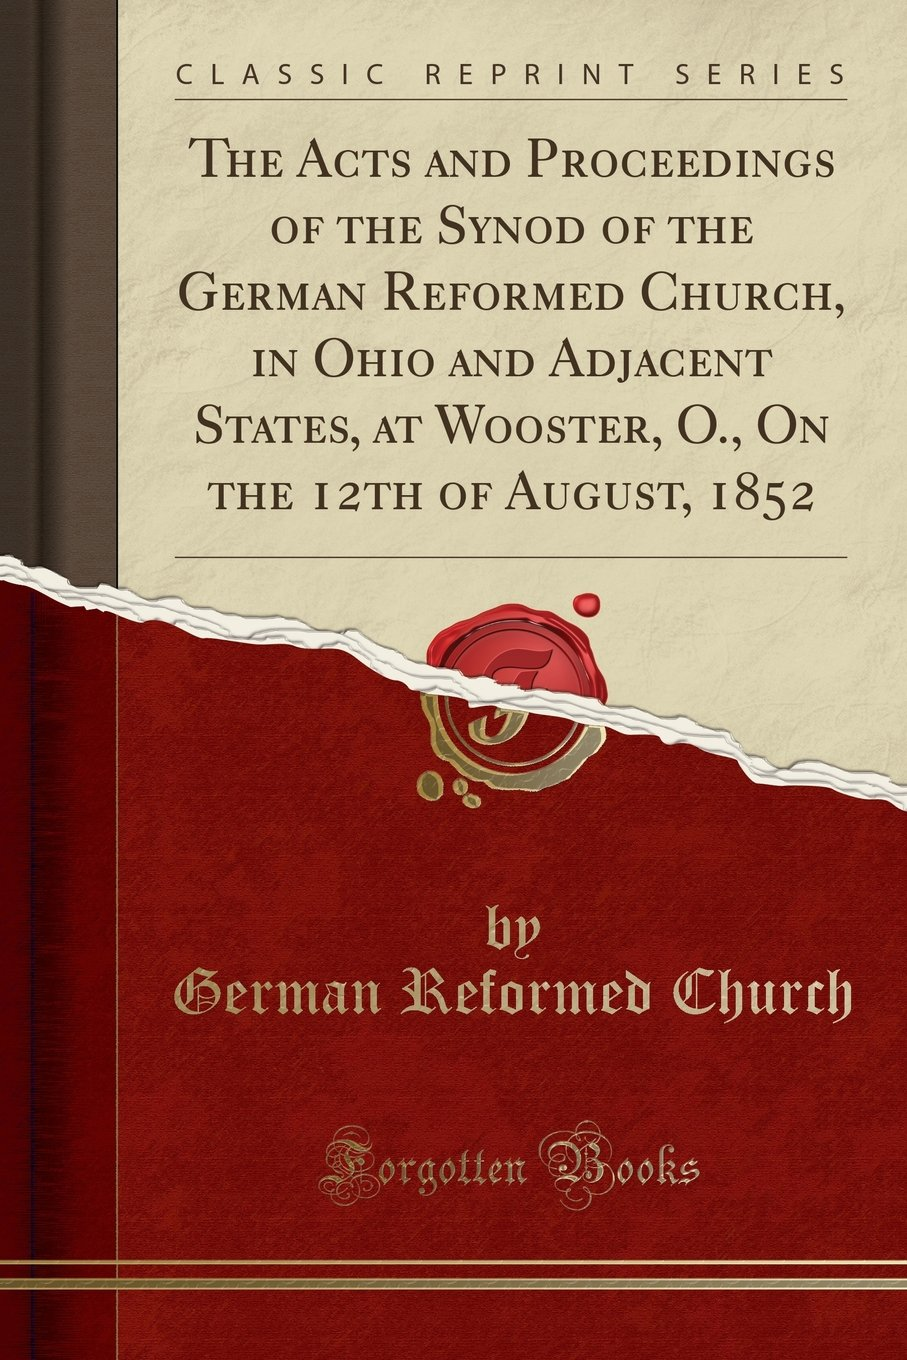 Download The Acts and Proceedings of the Synod of the German Reformed Church, in Ohio and Adjacent States, at Wooster, O., On the 12th of August, 1852 (Classic Reprint) pdf epub